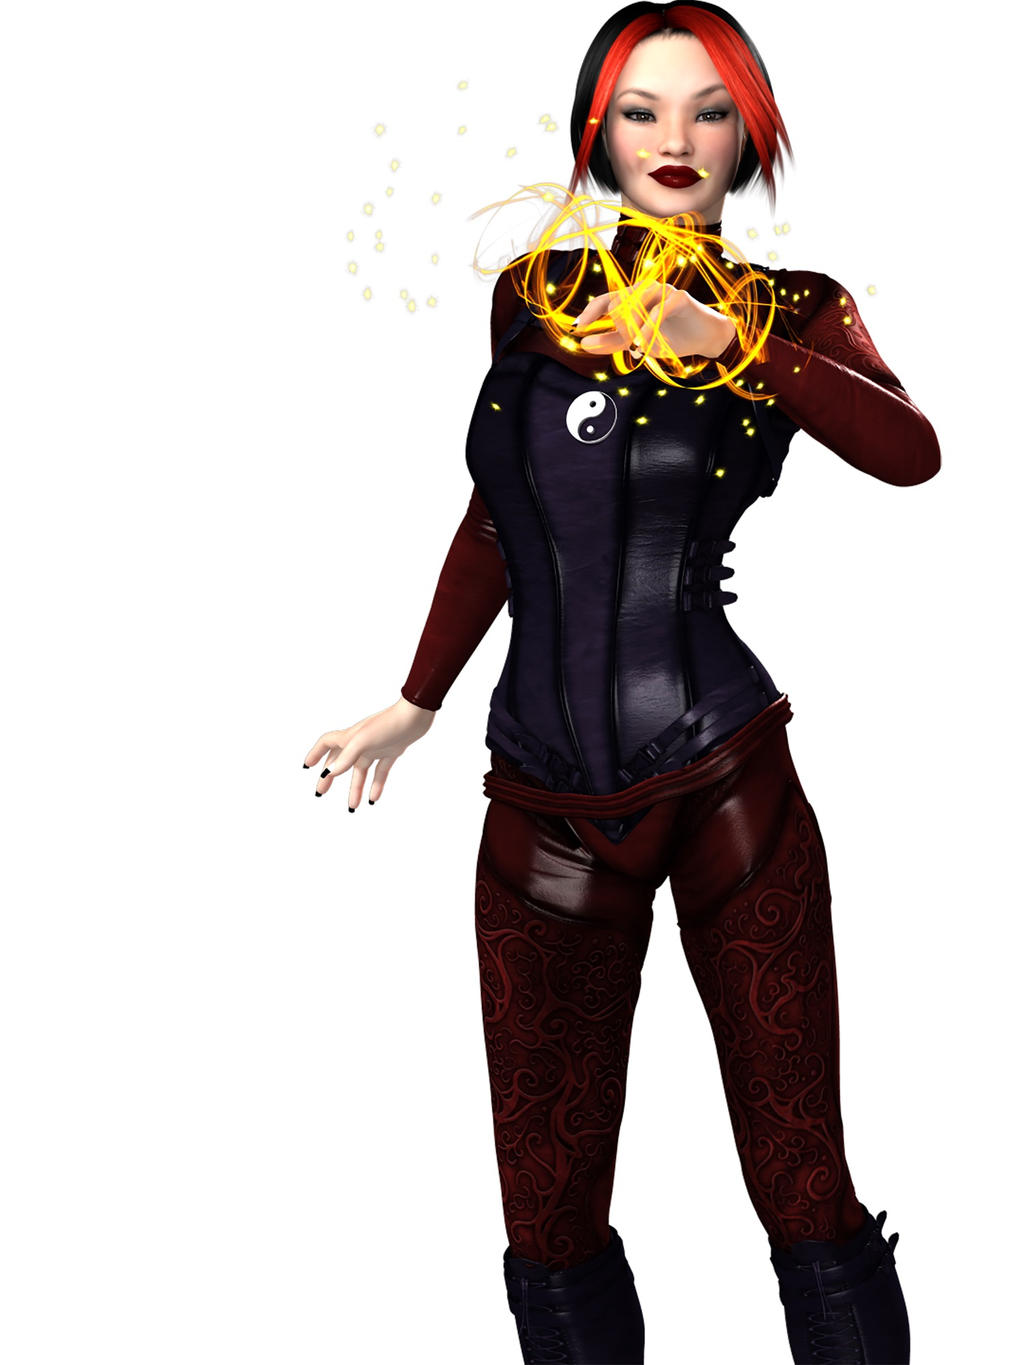 Serennia's Corseted Catsuit by RenderPretender by kenfusion45